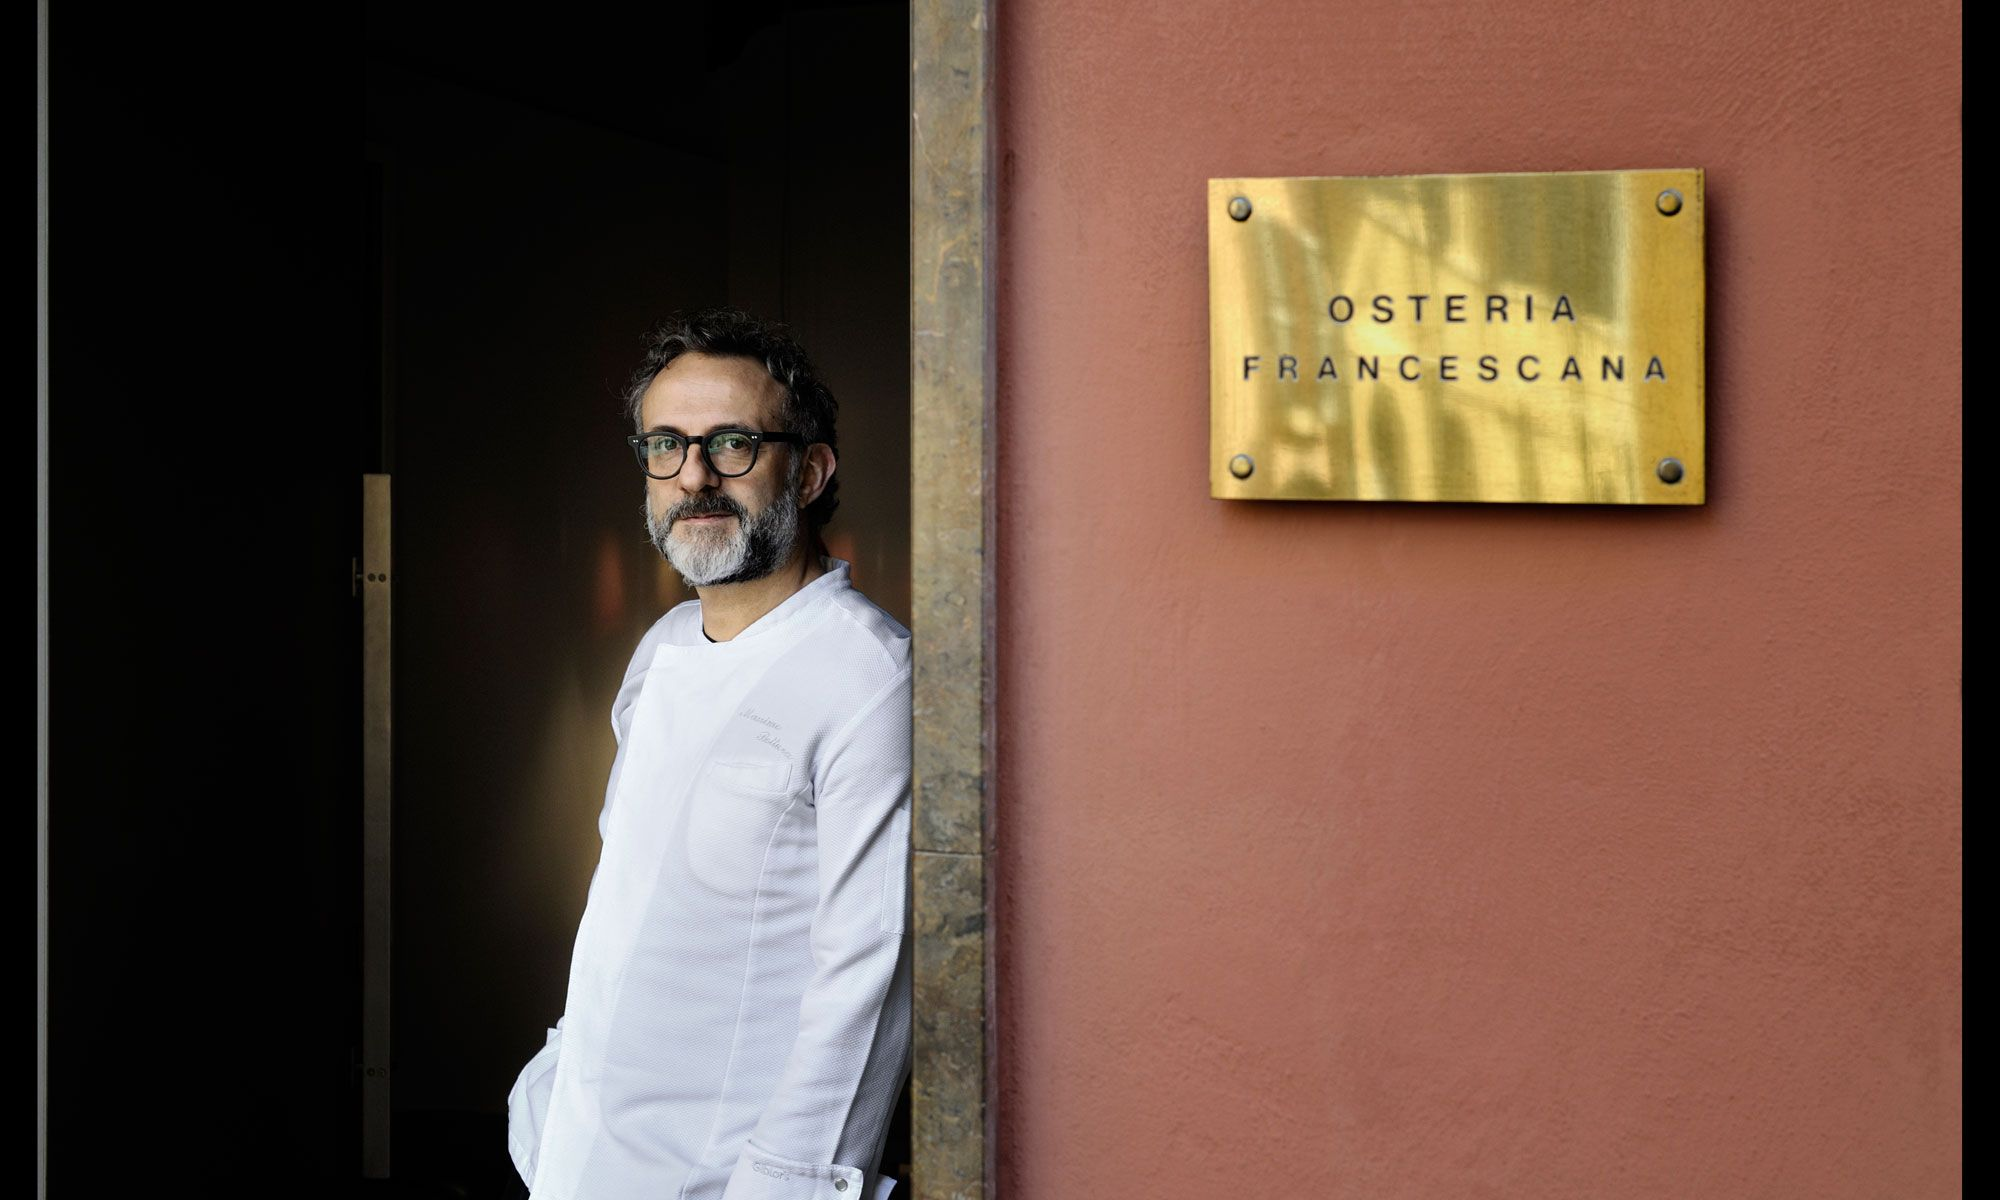 'Kitchen Quarantine' by Chef Massimo Bottura is the latest cooking show we can relate to now